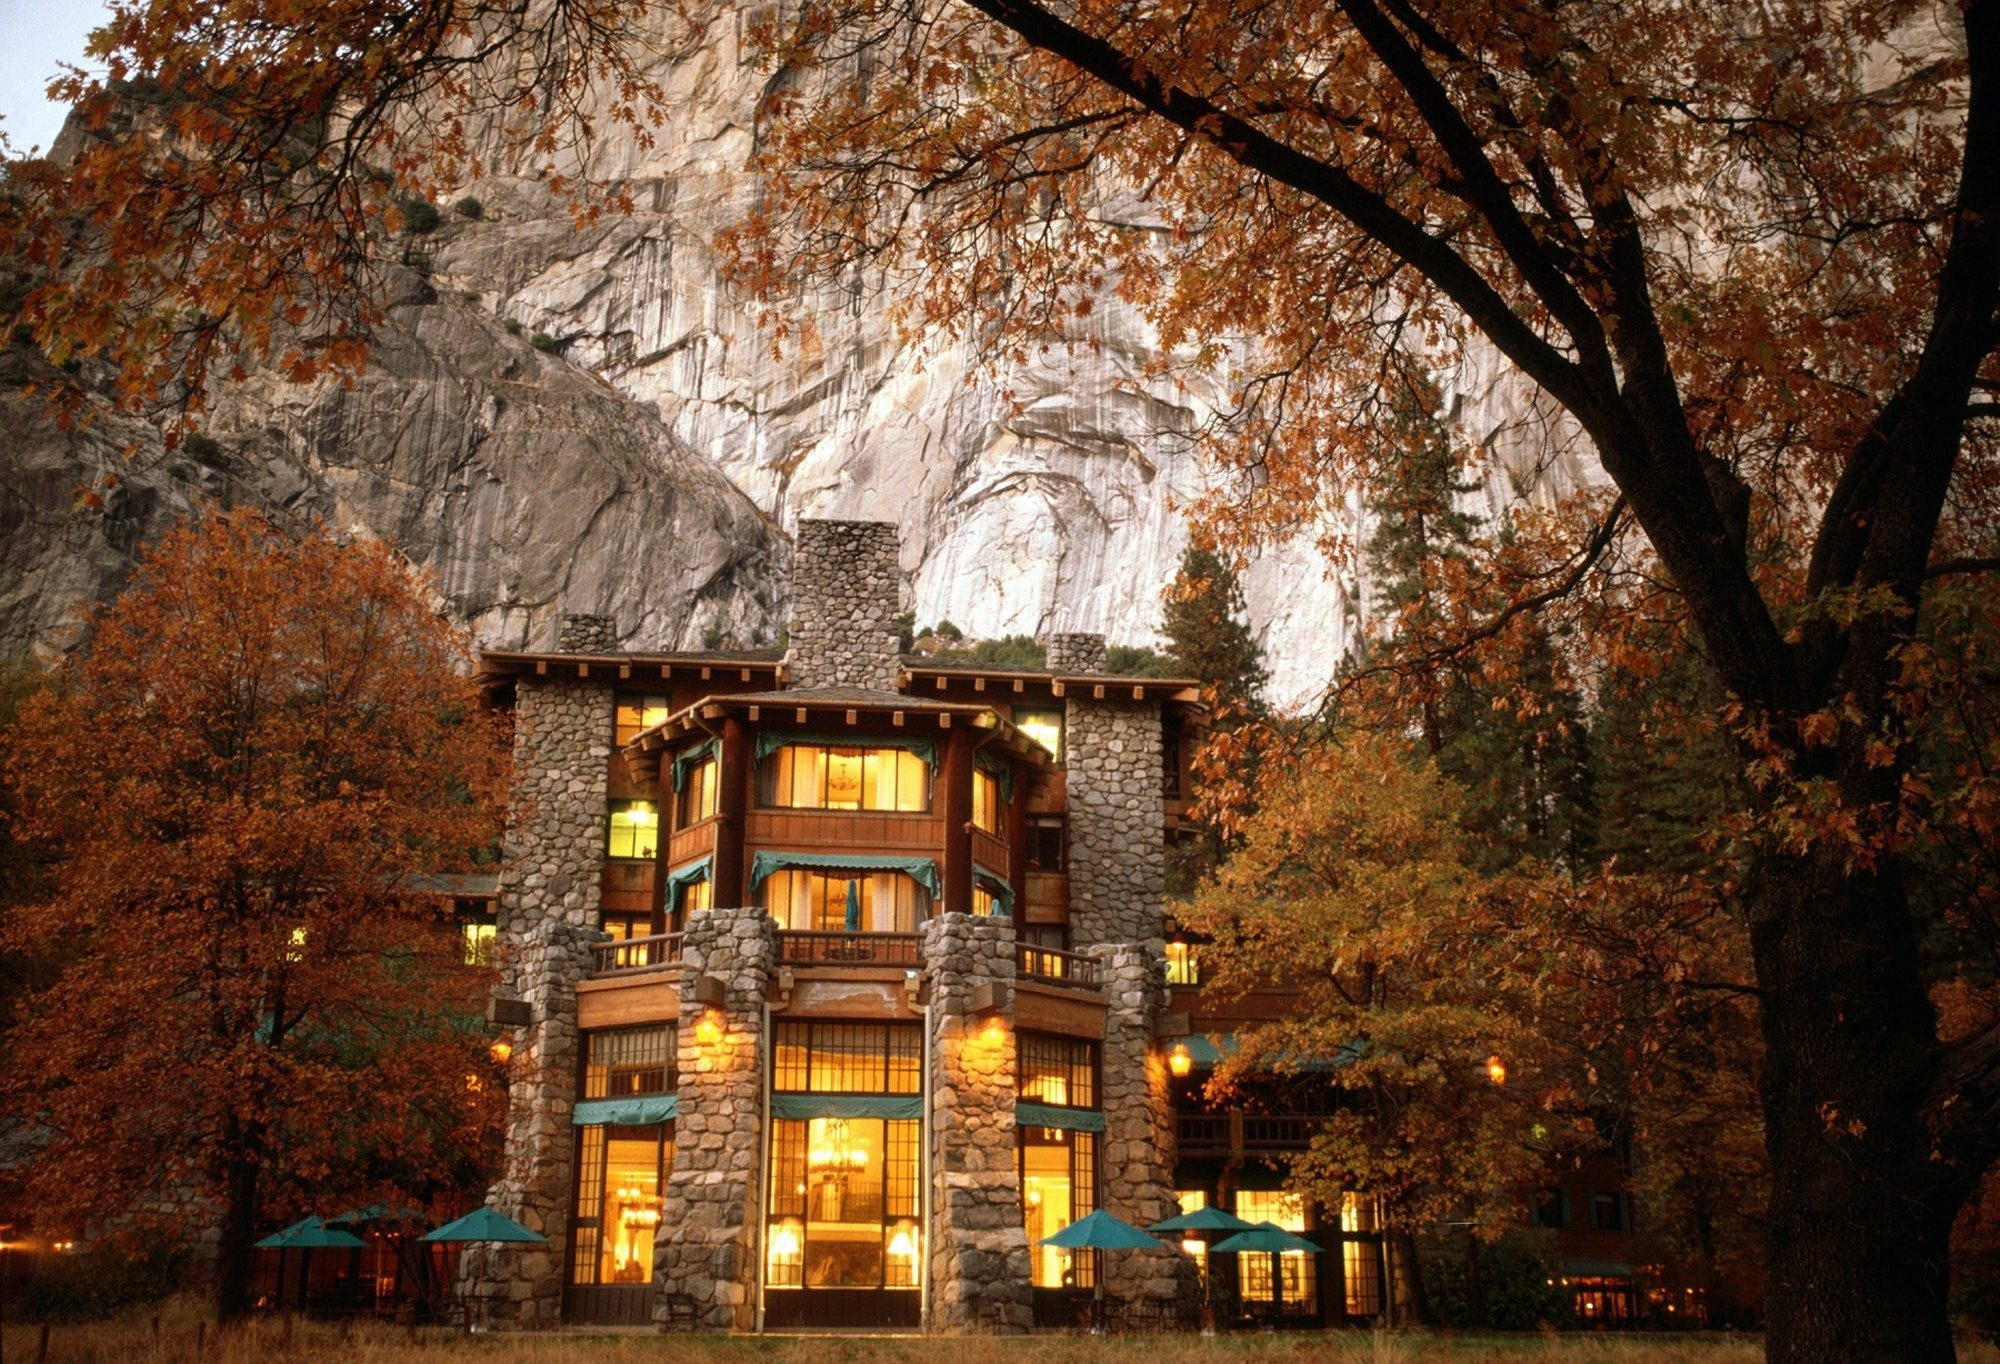 Delaware North says in its suit that it's owed up to $51 million for Yosemite trademarks like Ahwahnee Hotel. National Park Service says $3.5 million.